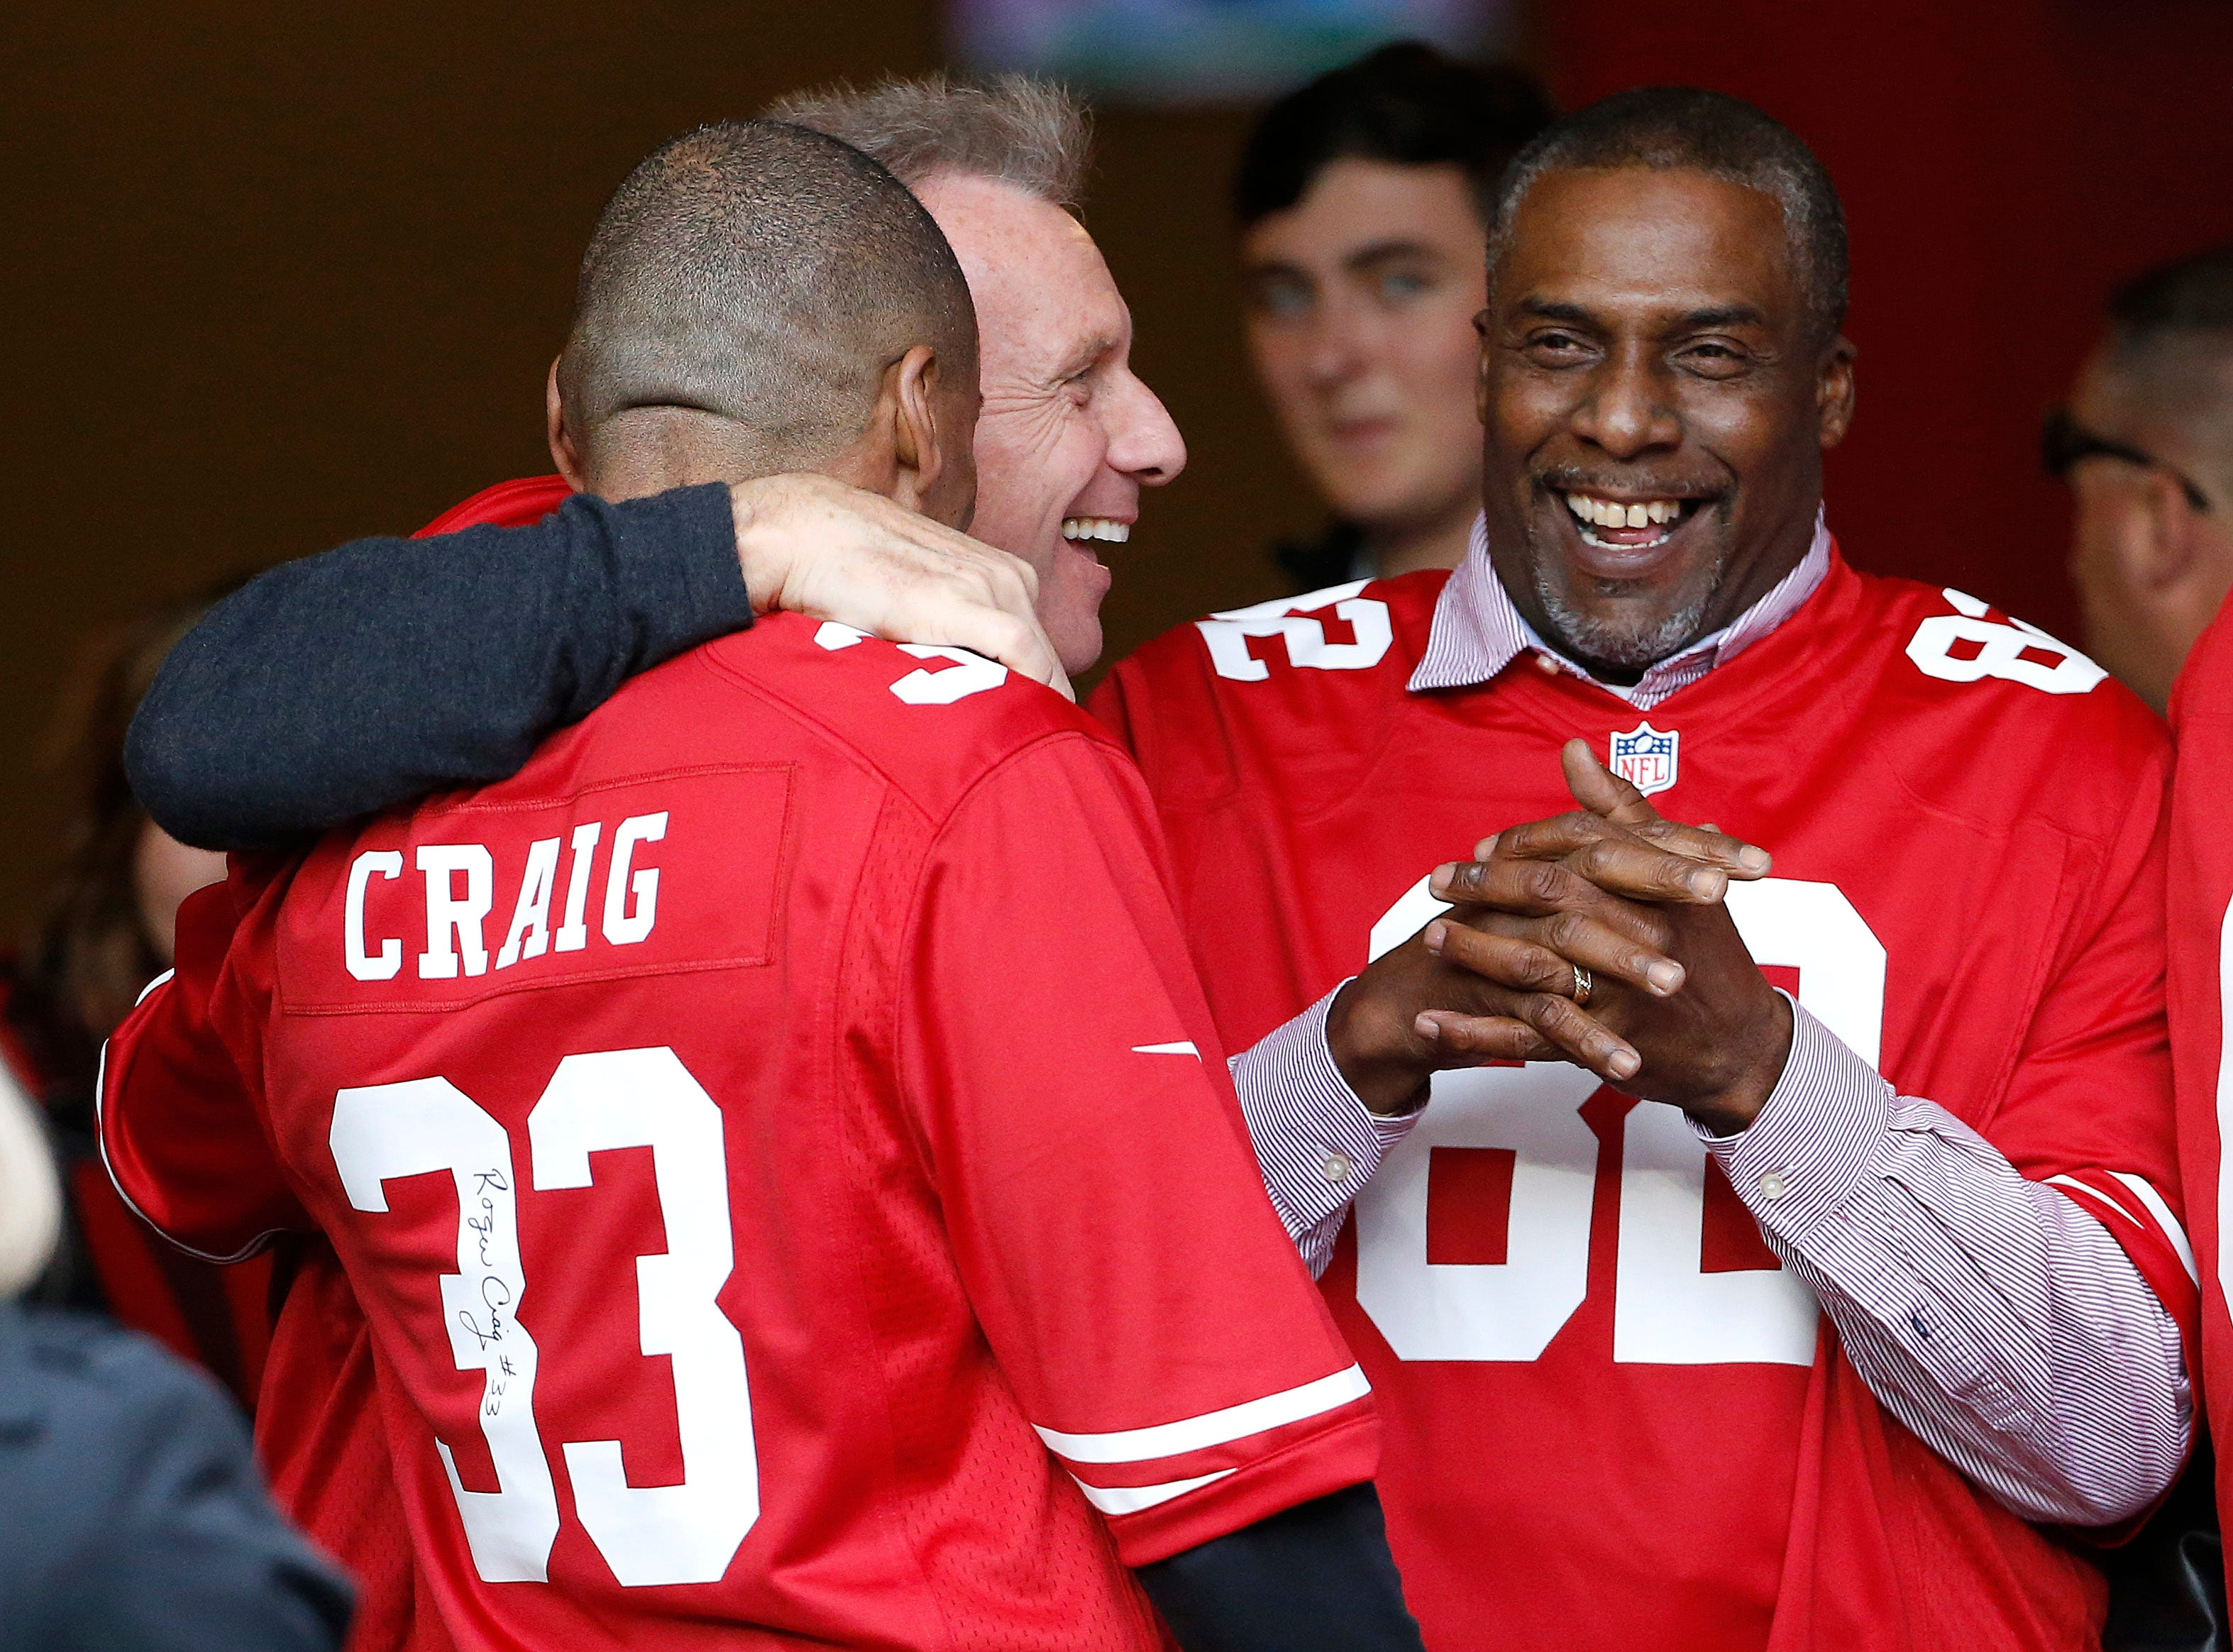 'Who the hell is this reject?' Delaware State star, Super Bowl hero rose from obscurity